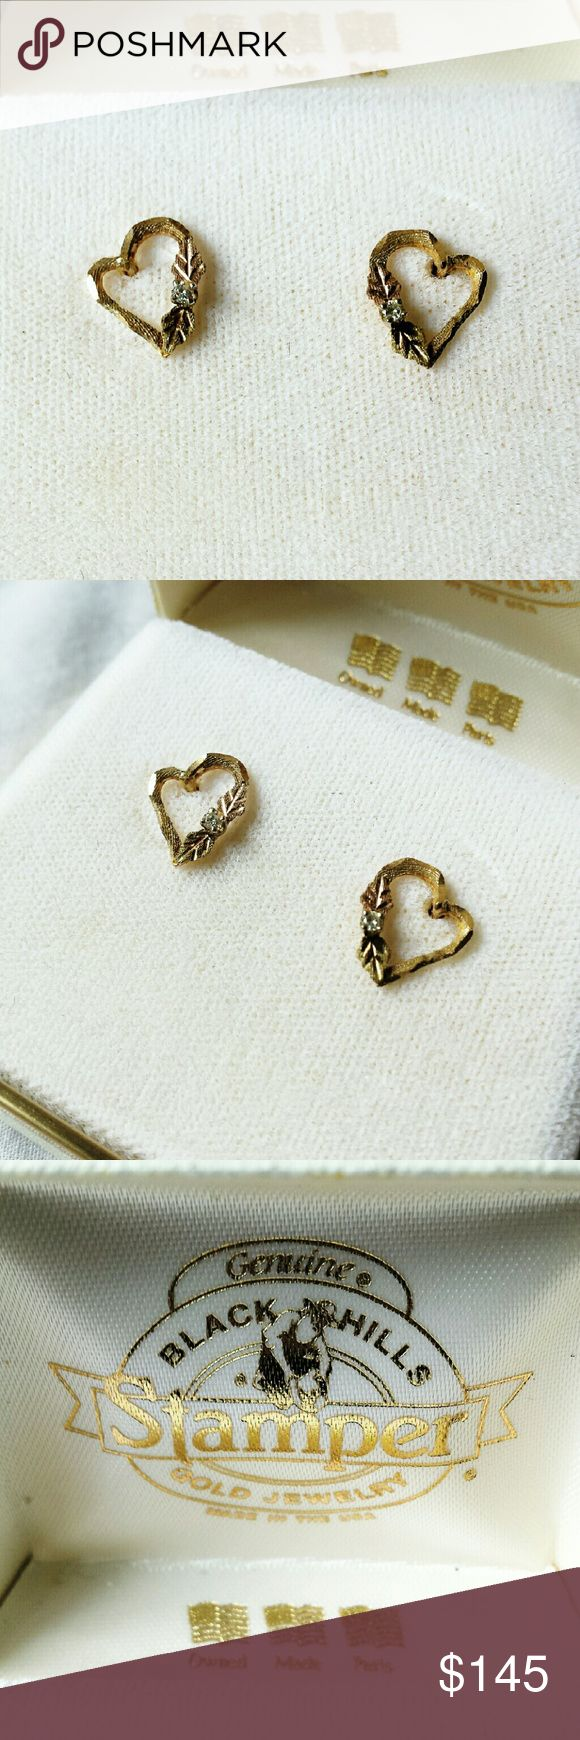 Vintage Black Hills Gold Stamper Heart Earrings Two tone vintage black hills gold stamper earrings. New in original box! Willing to accept reasonable offers! Black Hills Gold Jewelry Earrings